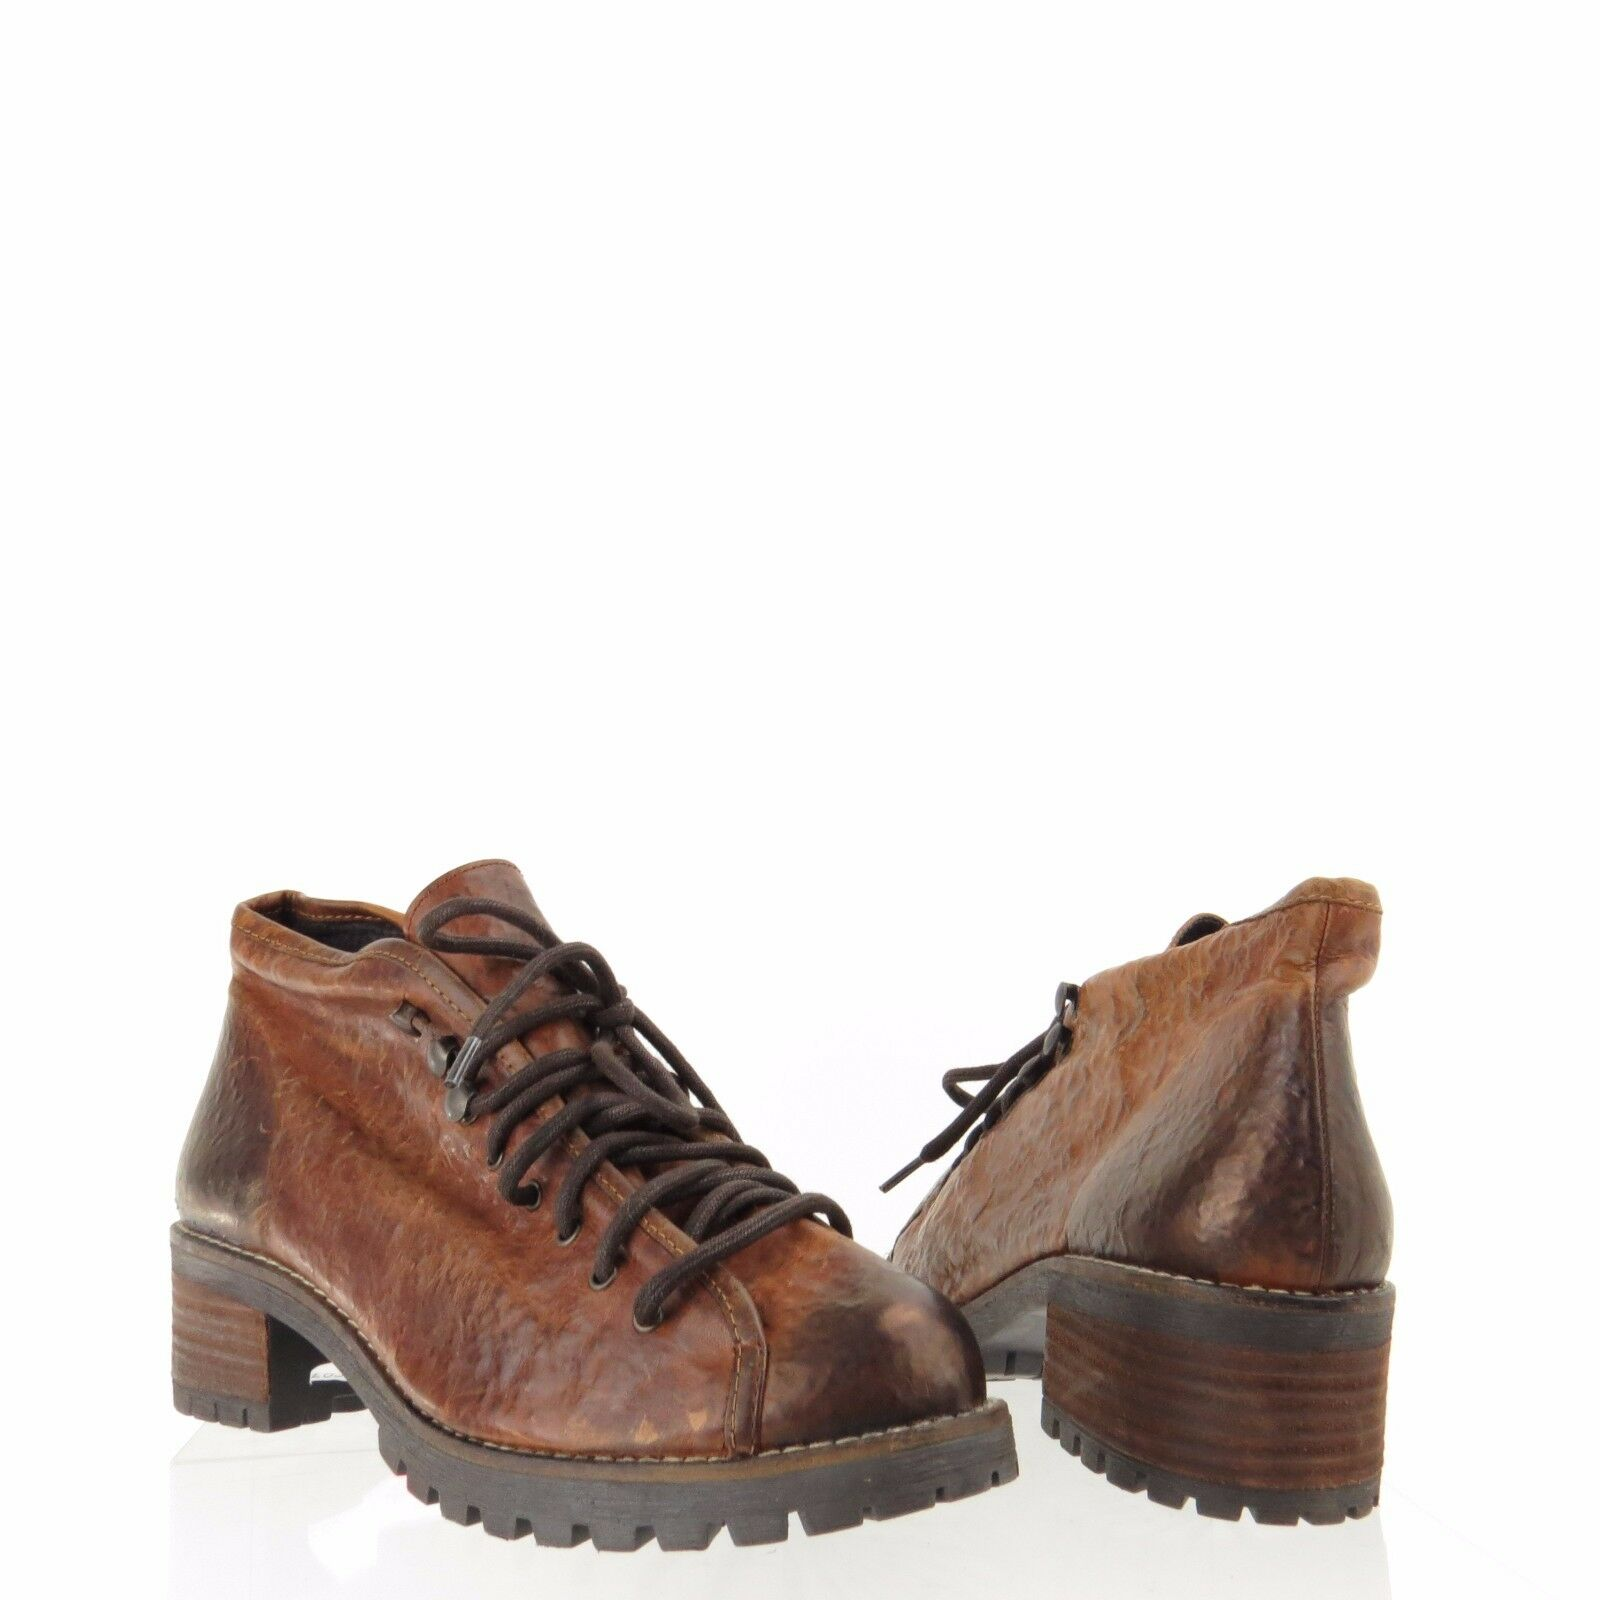 Women's Topshop Apprentice Shoes Brown Leather Lace Up Ankle Boots Size 42 NEW